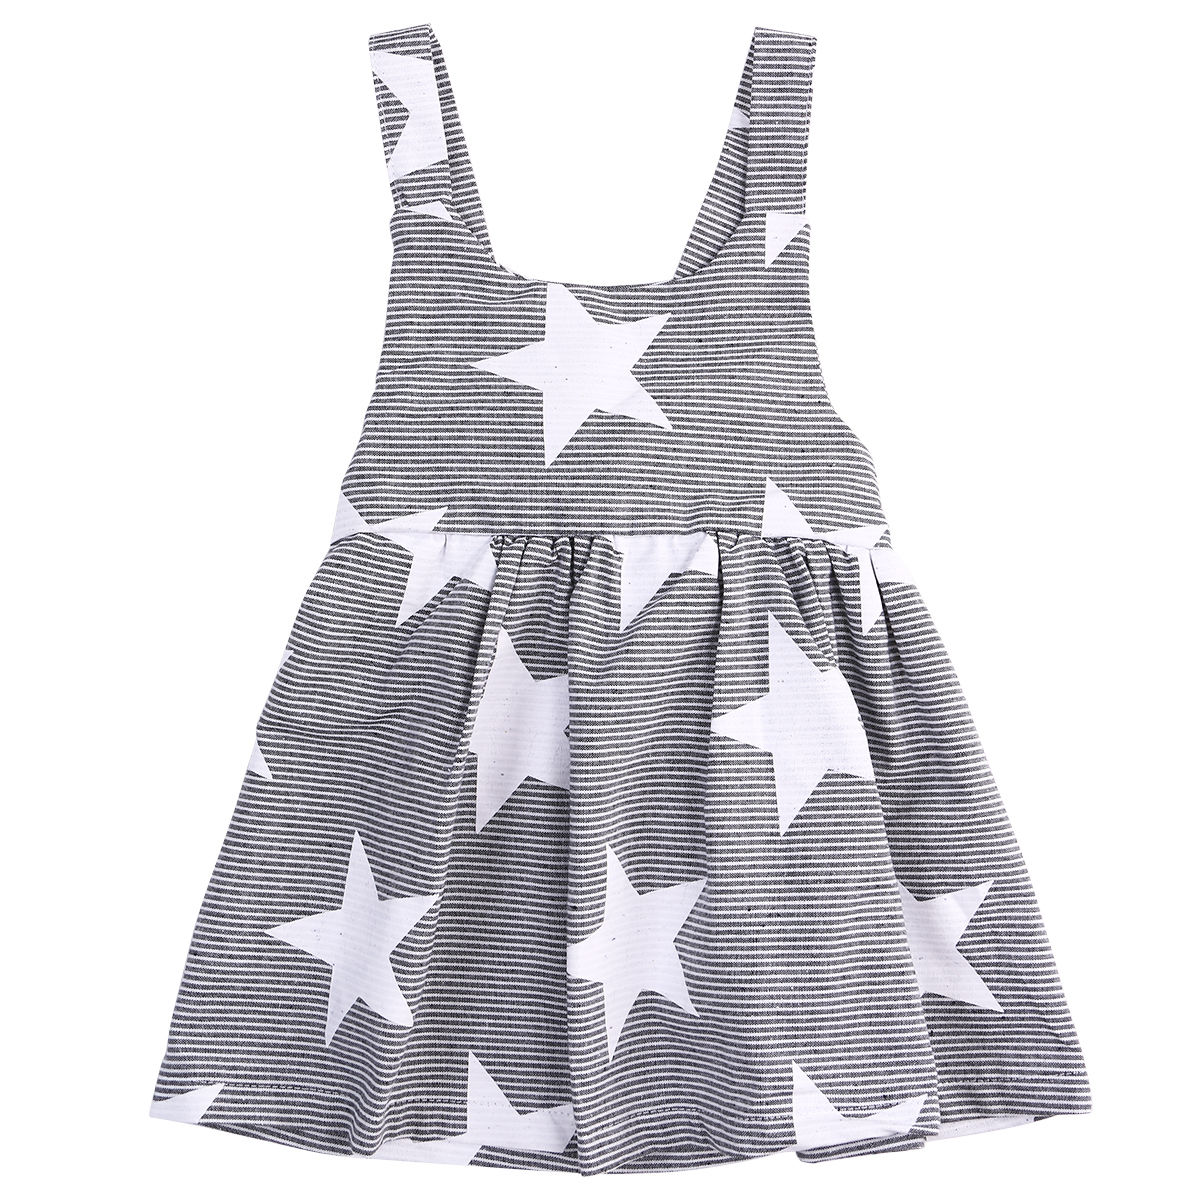 Baby kids Children Girls Dresses Fashion Infant Cotton Bow Cute Casual Gray Summer Beach Clothing Star Stripe Party Girl Dress baby girl summer dress children res minnie mouse sleeveless clothes kids casual cotton casual clothing princess girls dresses